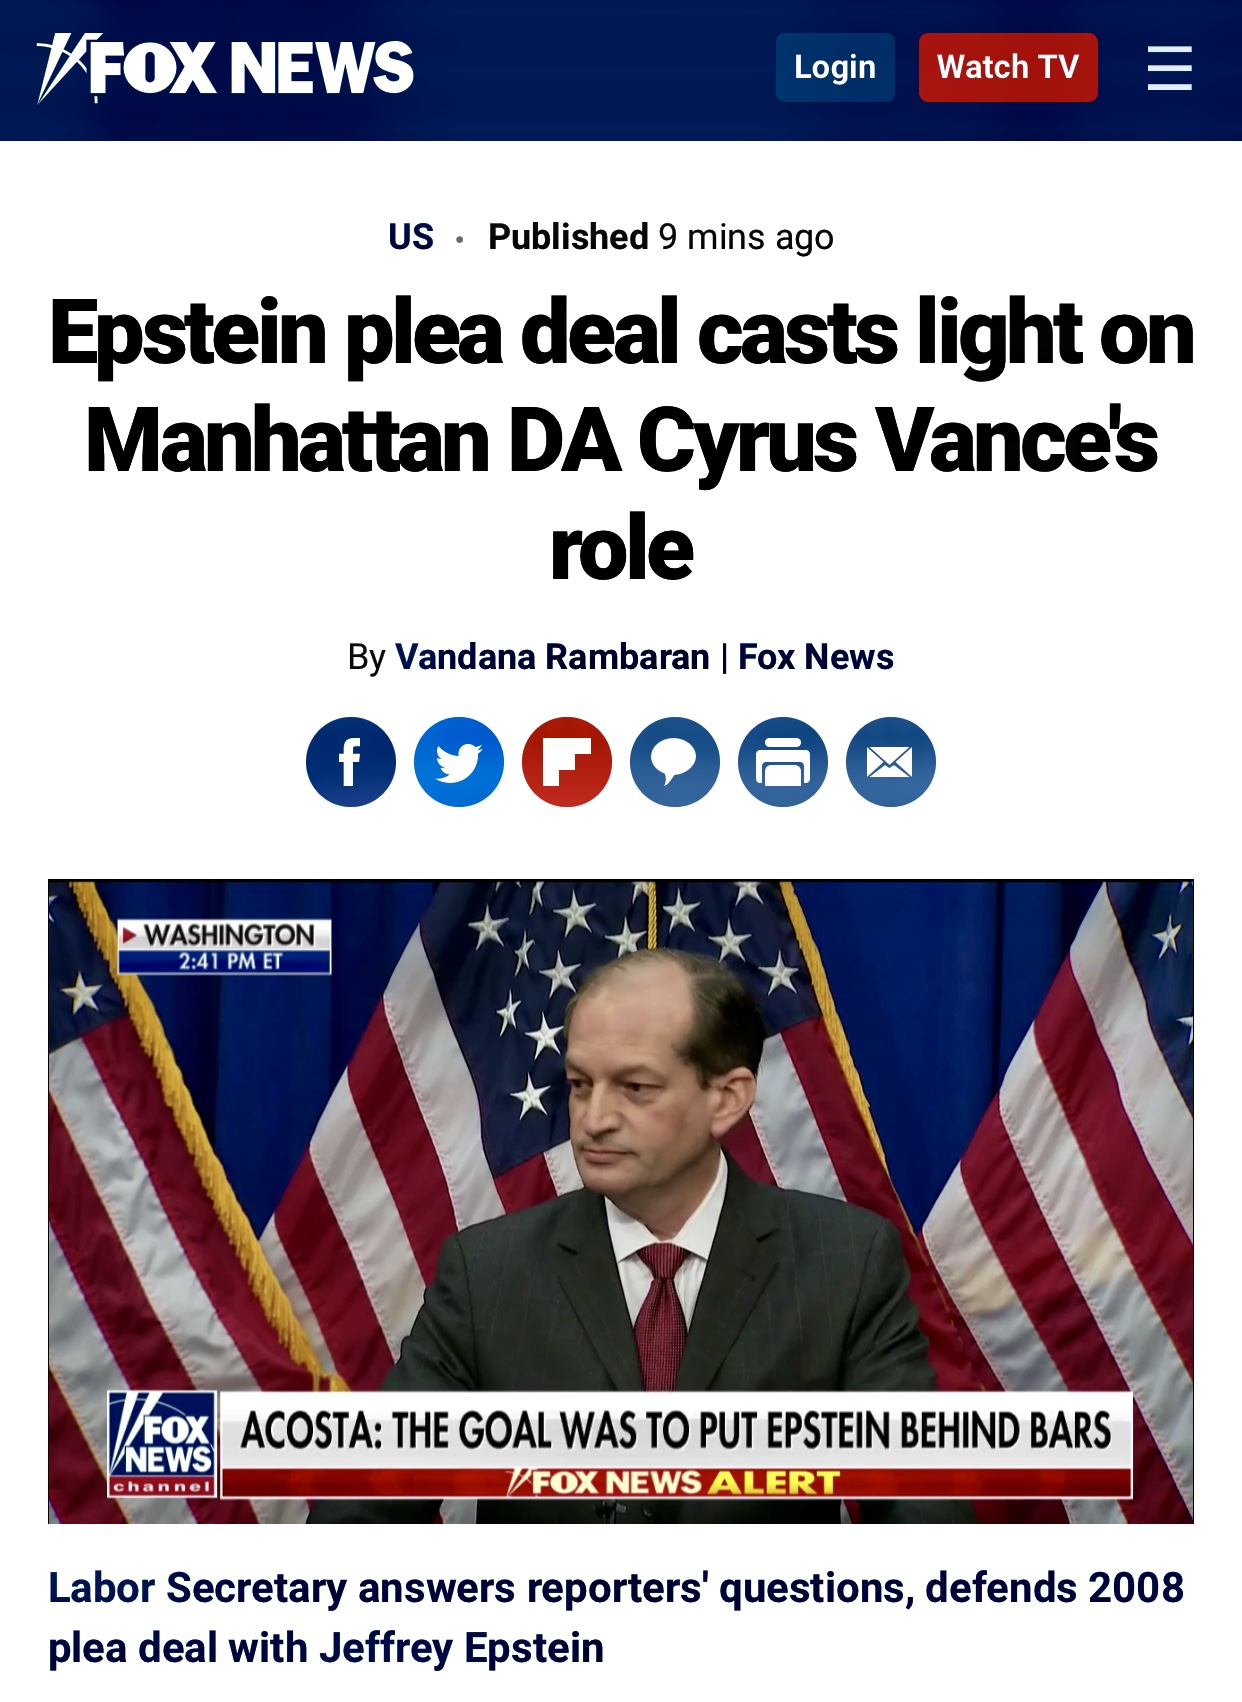 Epstein plea deal casts light on Manhattan DA Cyrus Vance's role | Fox News